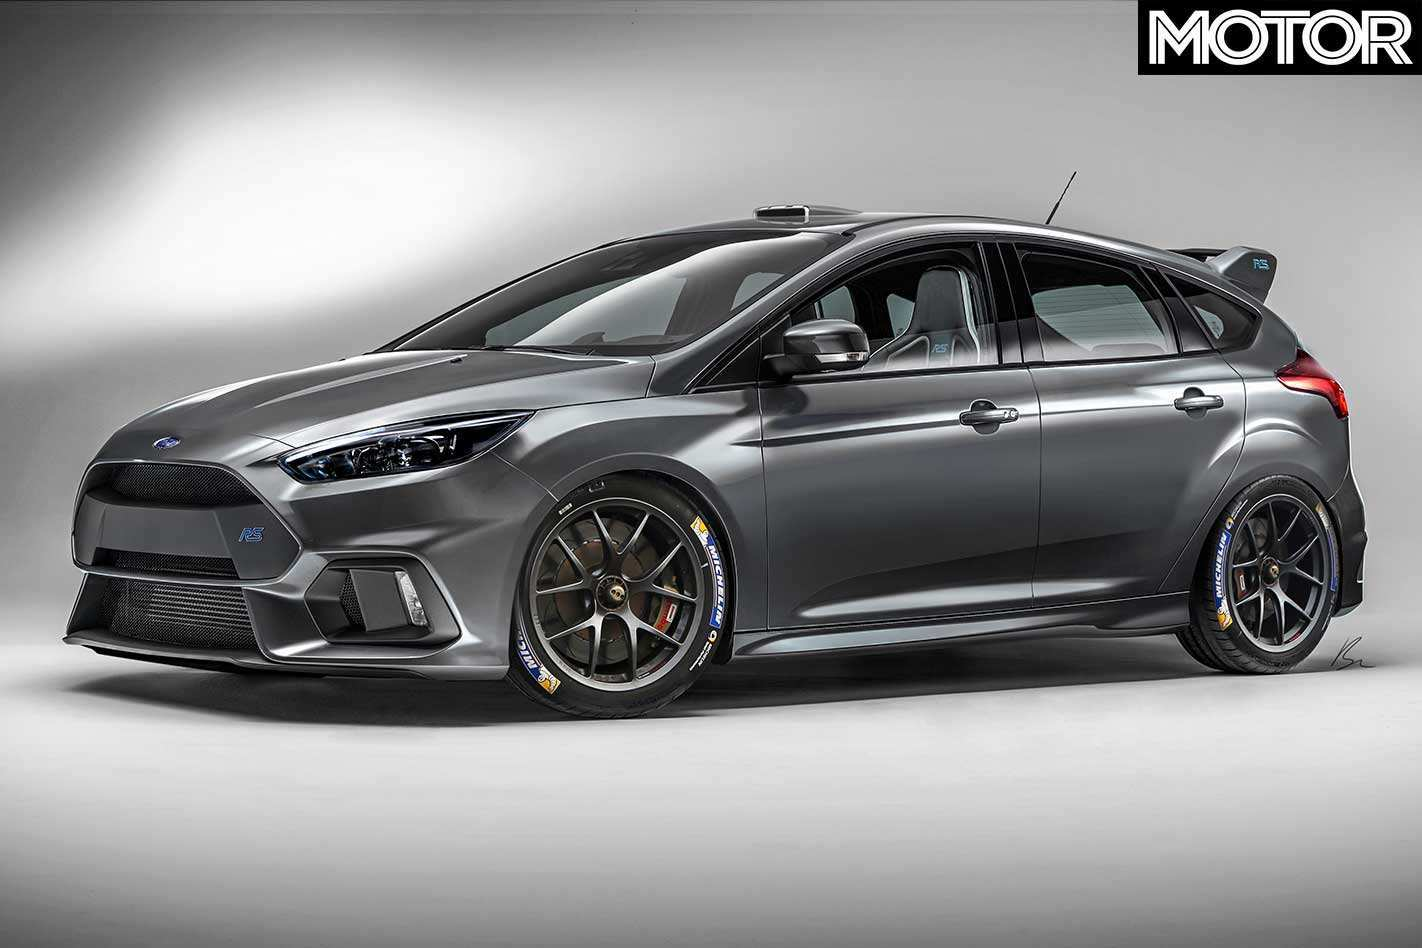 69 Concept of 2020 Ford Focus RS Spesification for 2020 Ford Focus RS